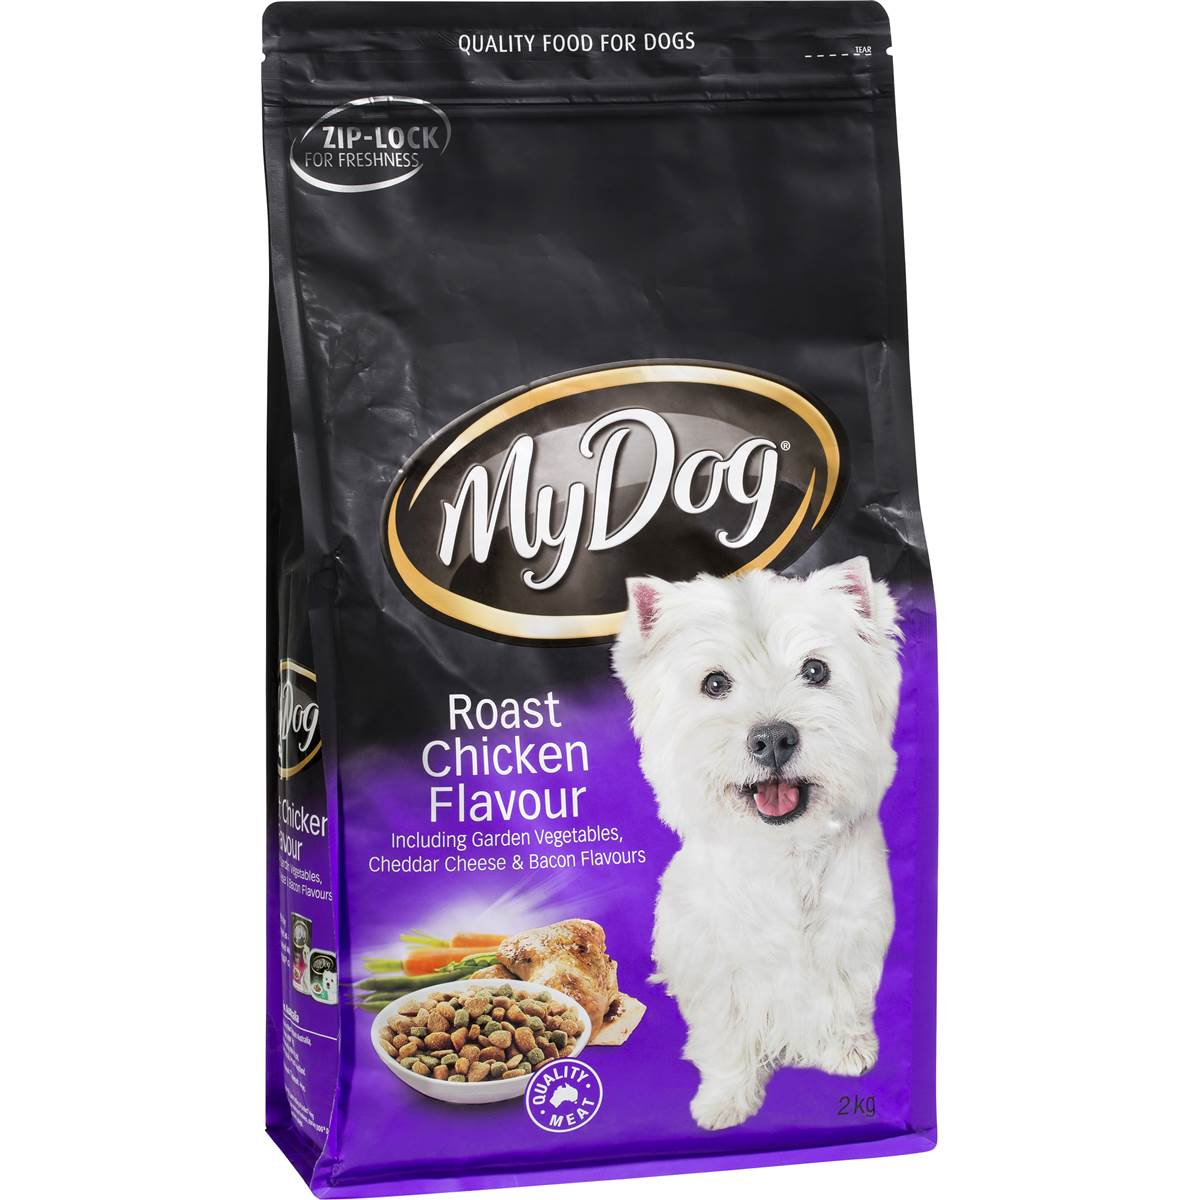 My dog adult dog food roast chicken flavour woolworths for Akc dog food